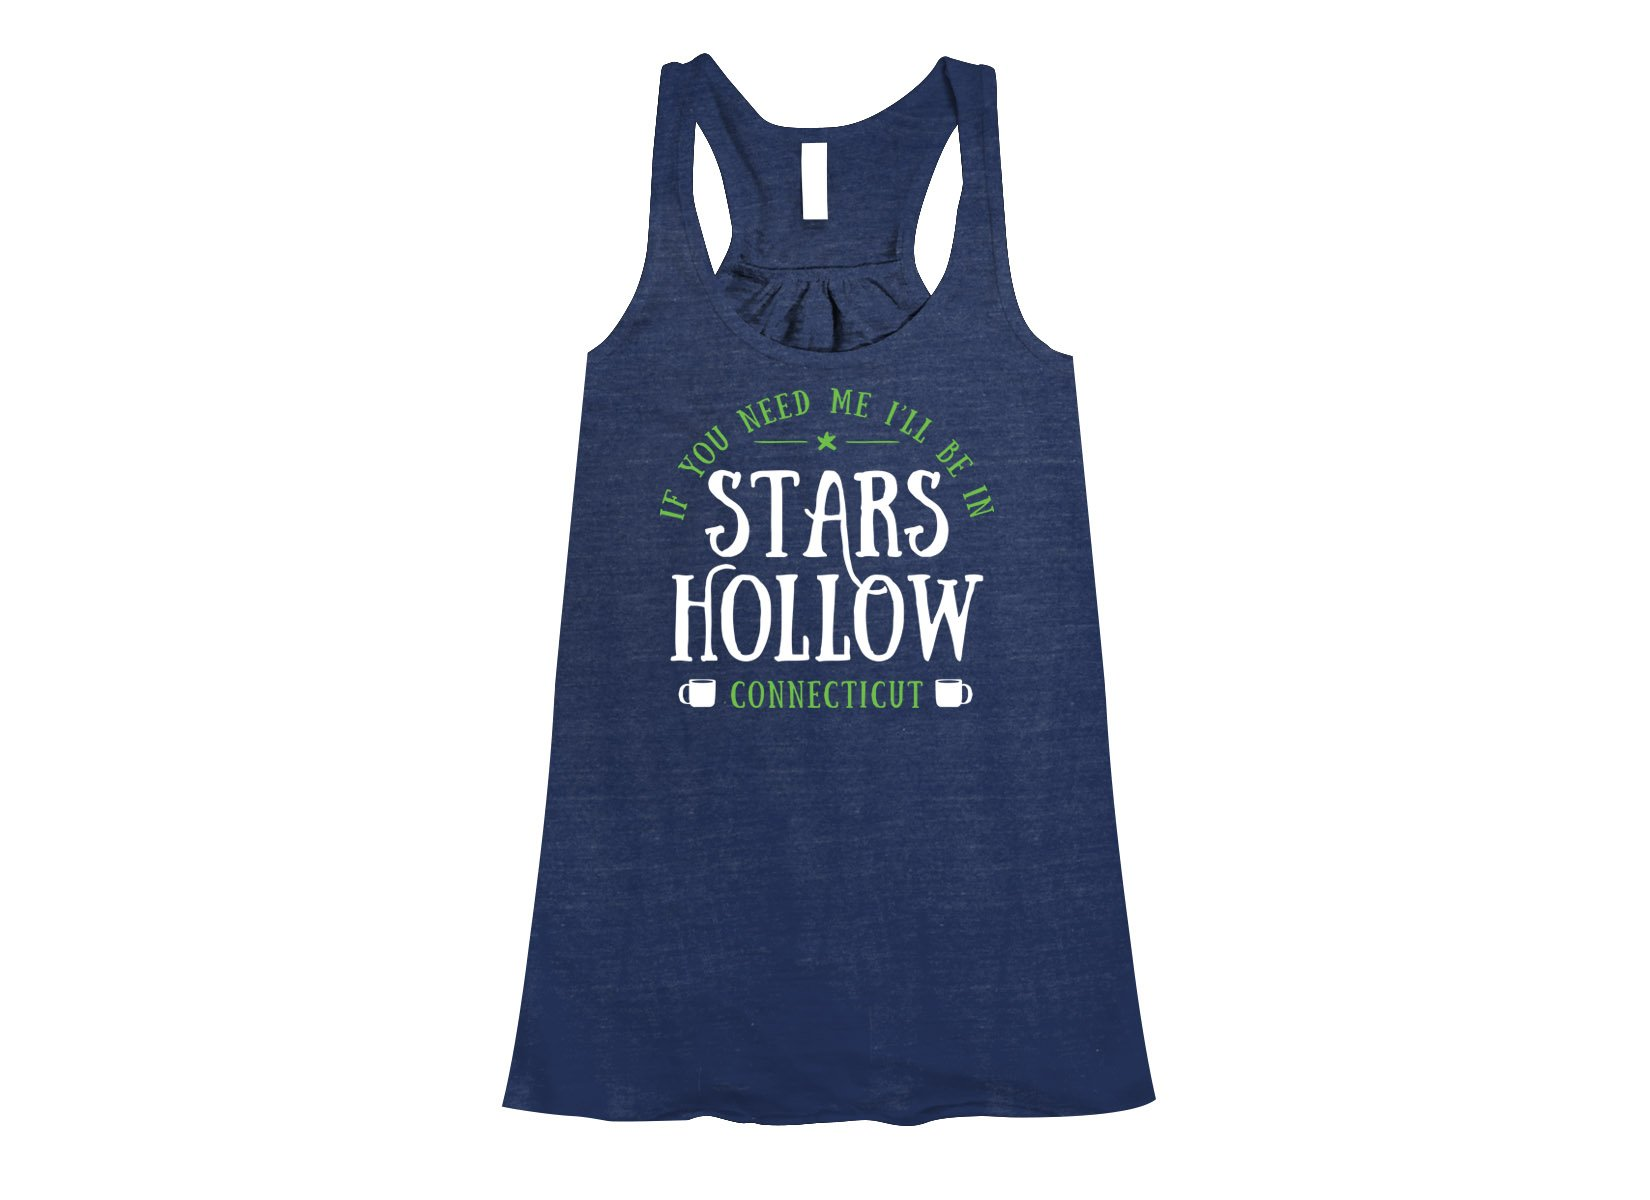 Stars Hollow on Womens Tanks T-Shirt